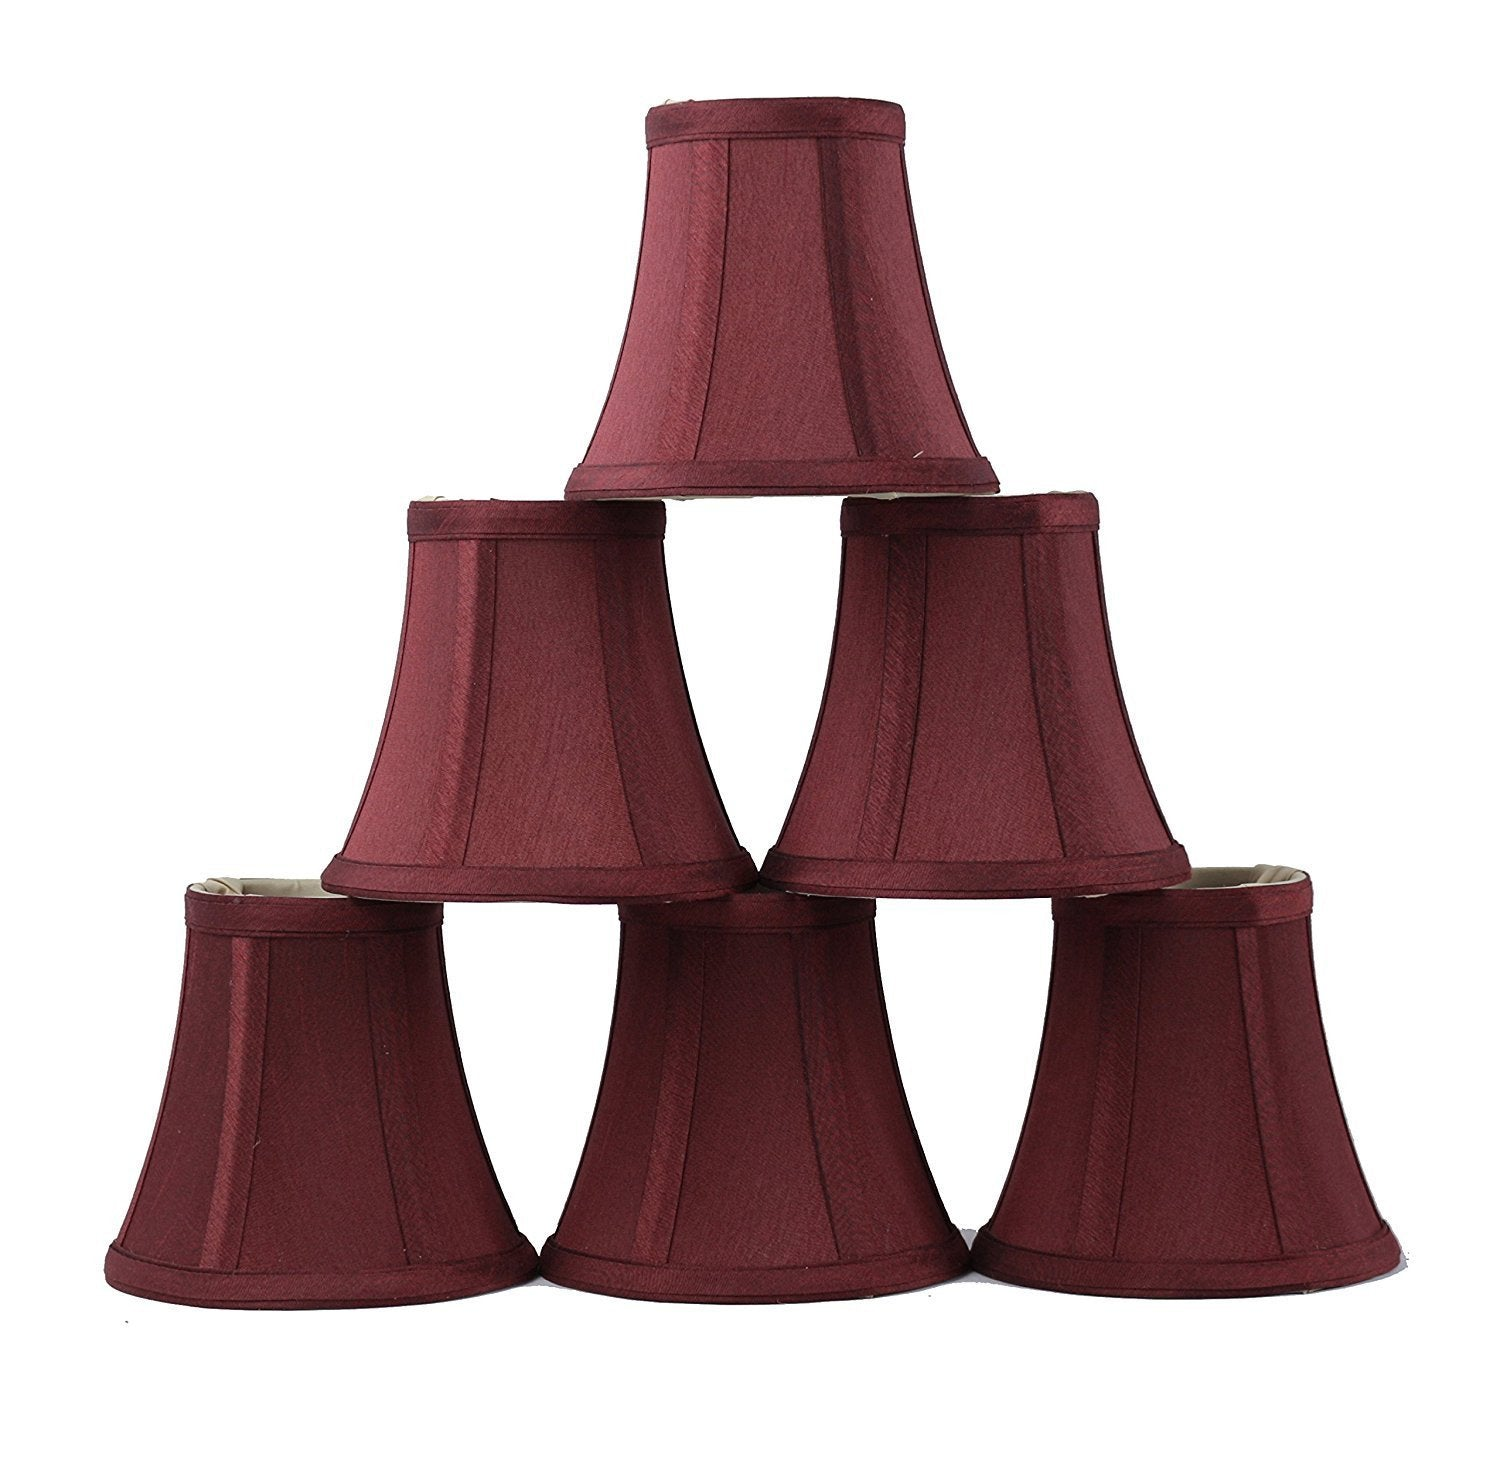 Silk Bell 5-inch Chandelier Lamp Shade - 5 Colors